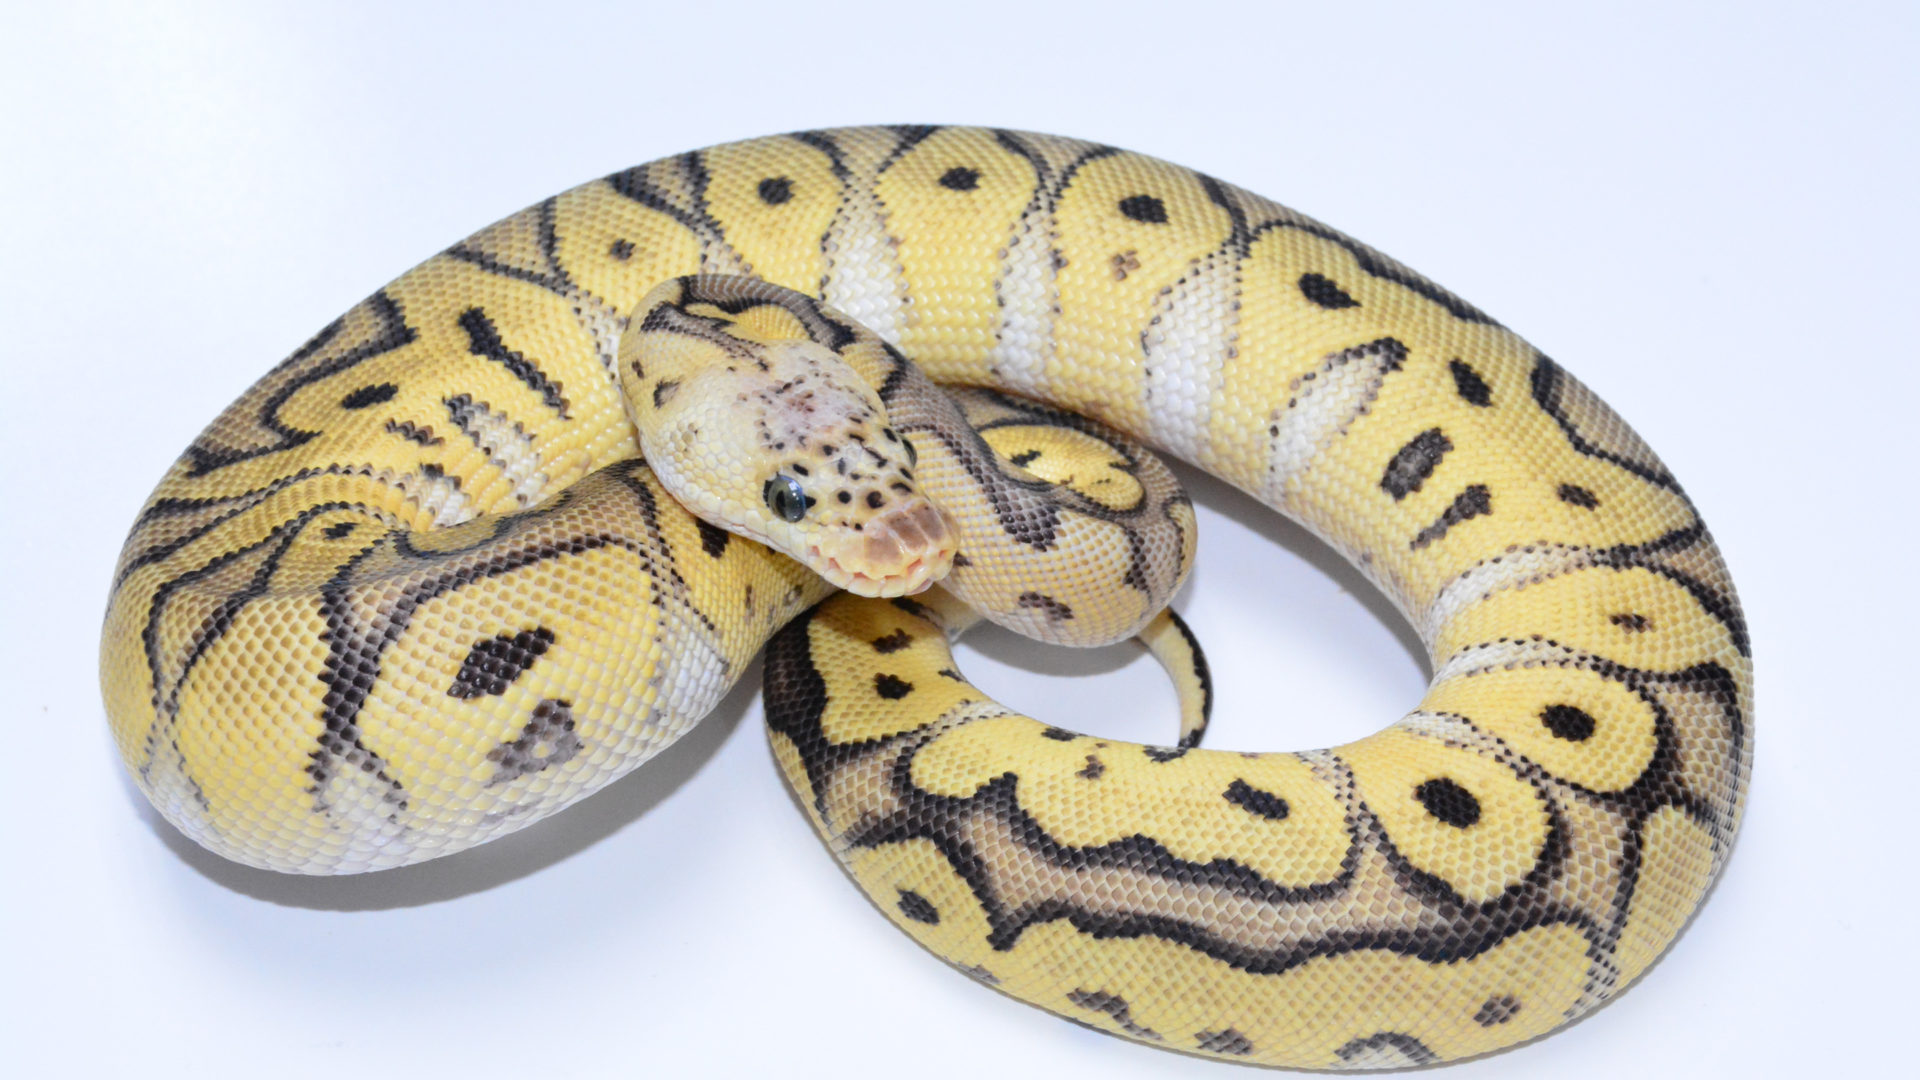 ball pythons – Genetically Diverse Ball Pythons